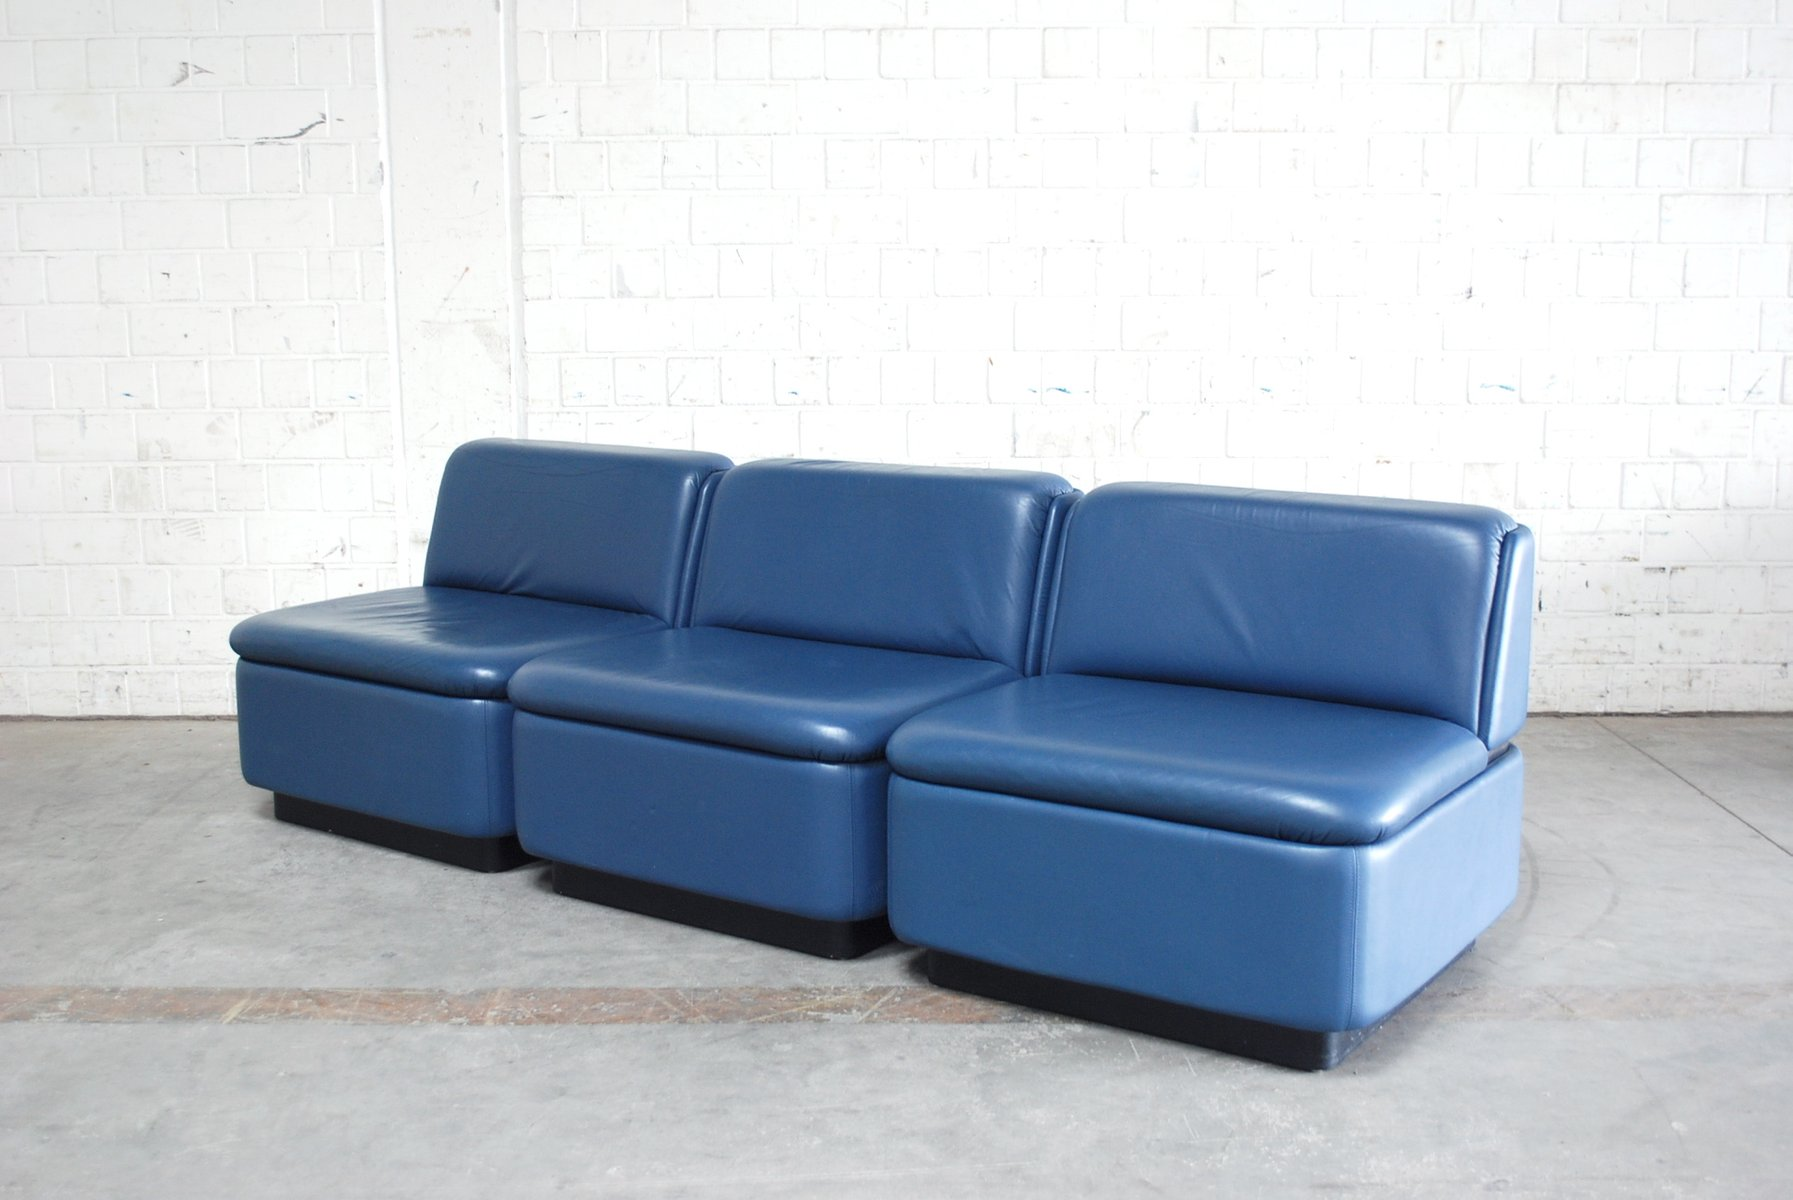 Vintage Modular Blue Leather Sofa 1979 For Sale At Pamono